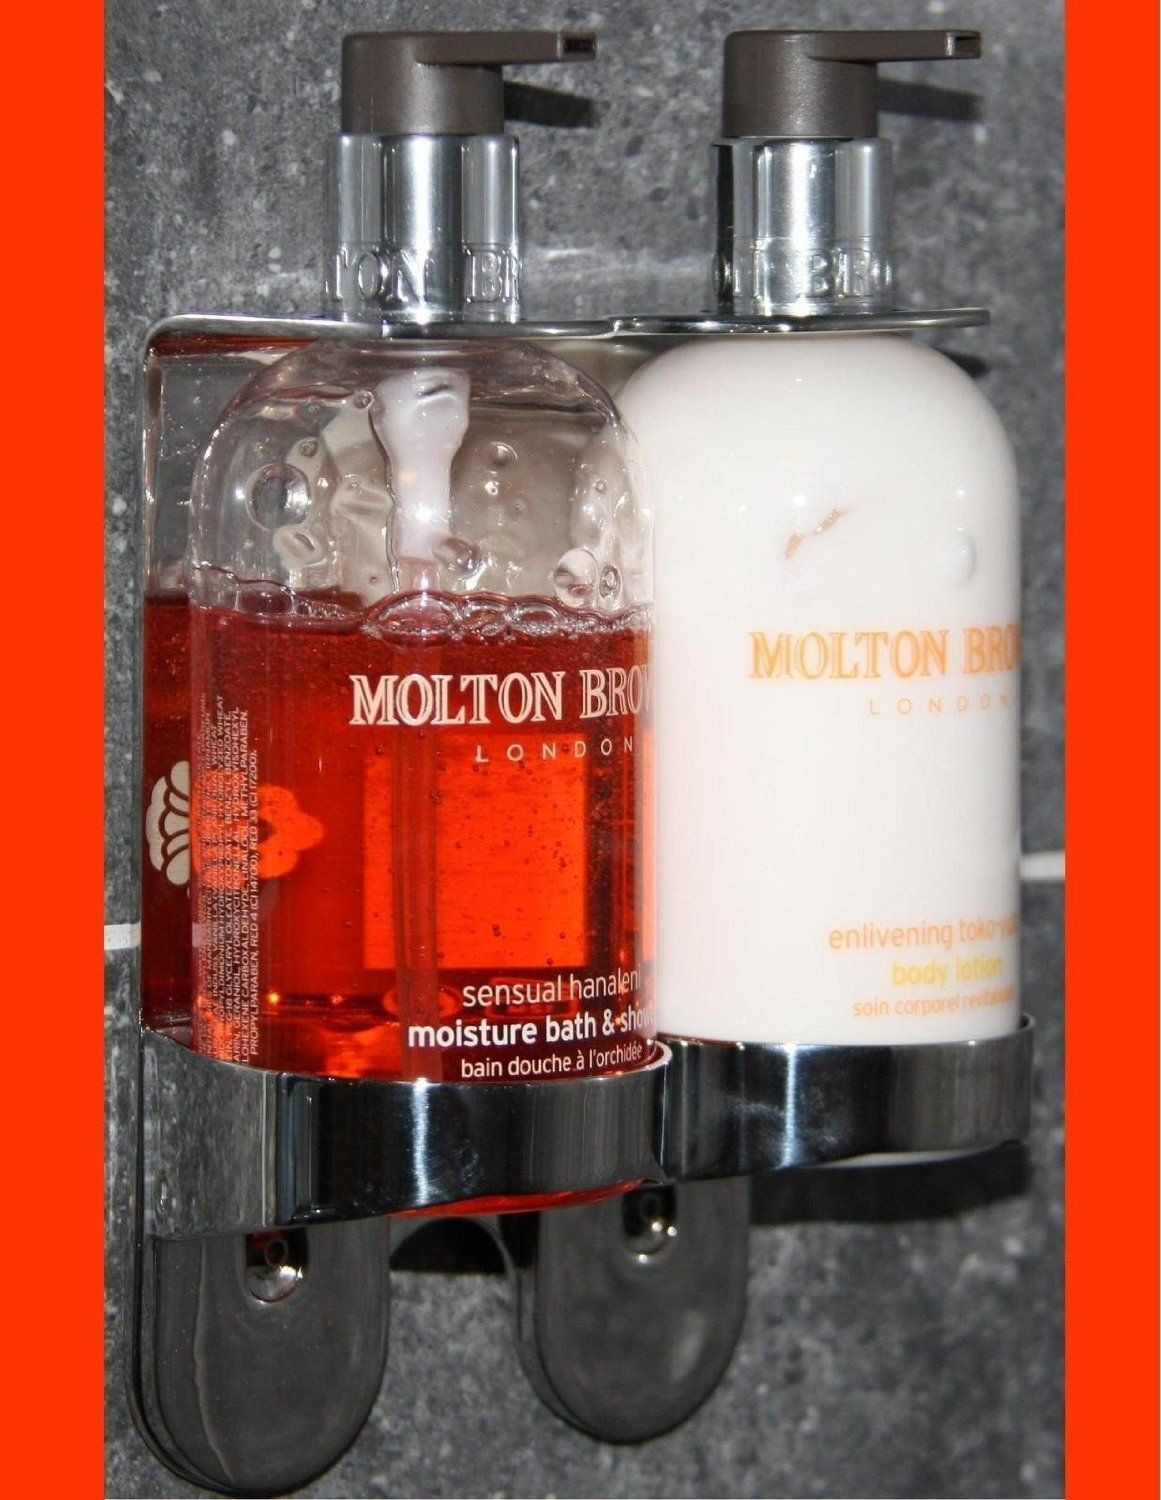 Double Chrome Handwash Holder Dispenser Arc Butler Wall Mount Molton Brown 300ml Bath And Shower Body Wash Hand Lotion Amazo Hand Lotion Bottle Molton Brown